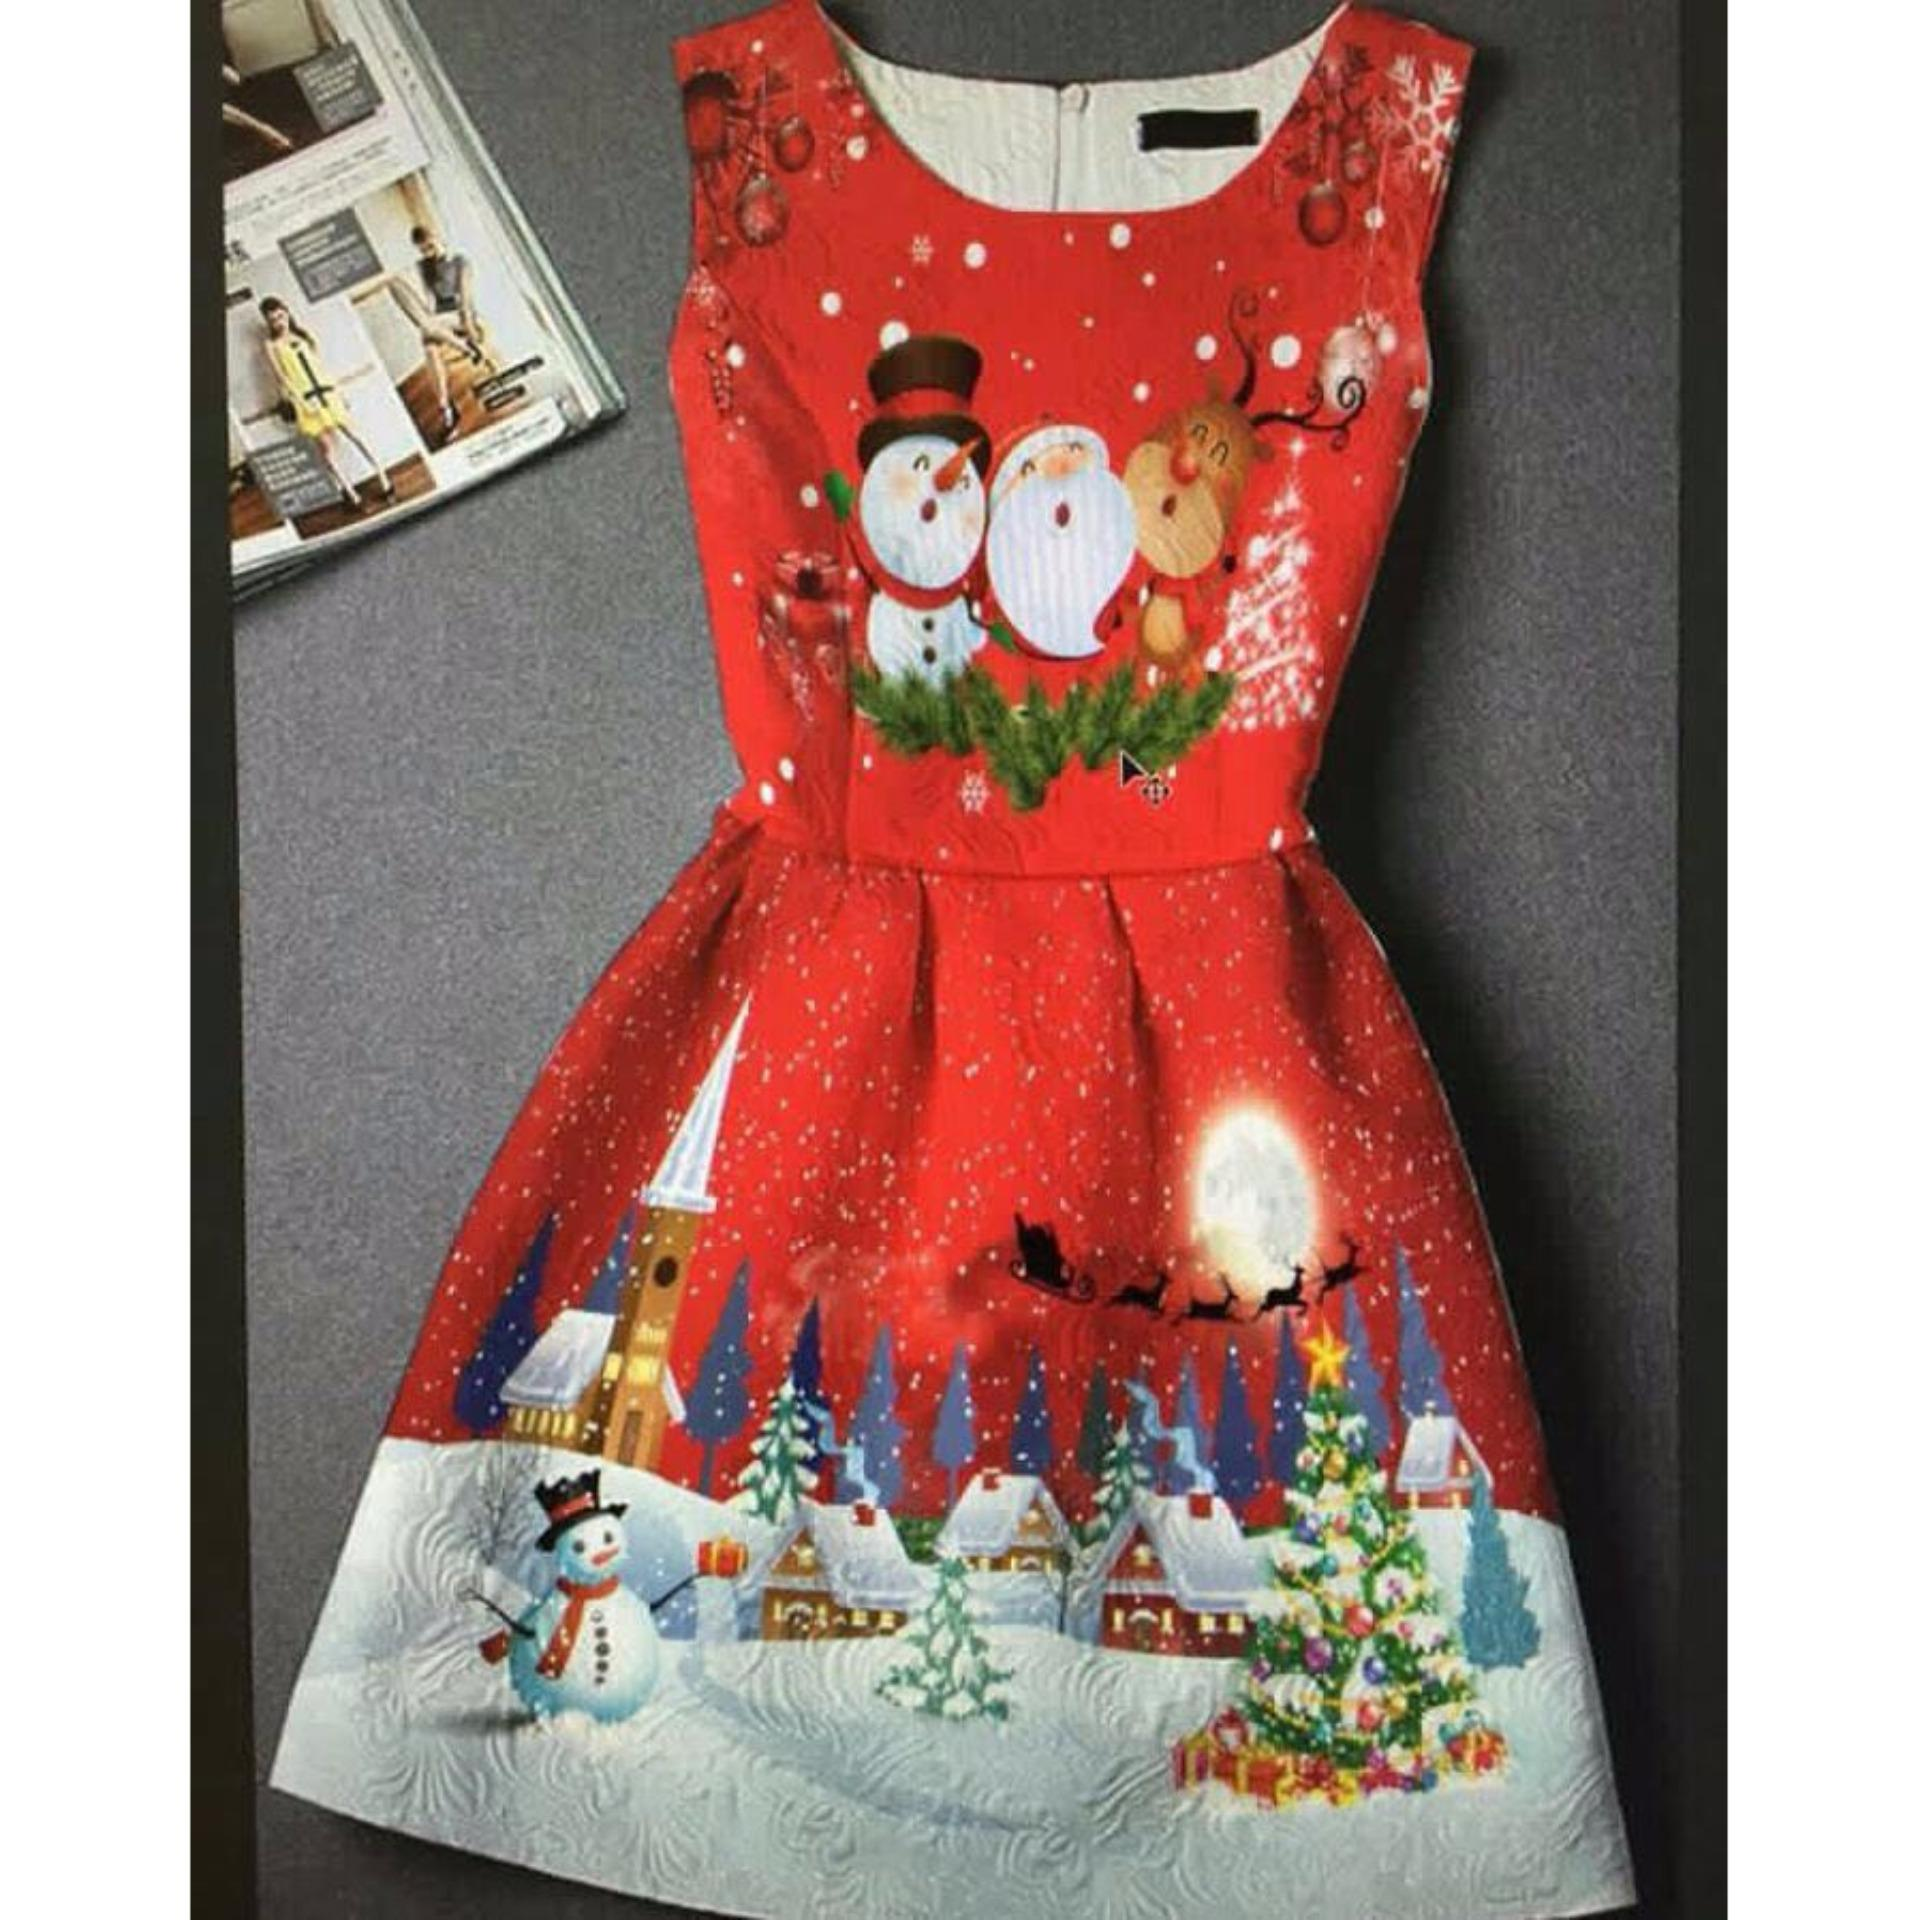 Yutan Dress Anak IMPORT Santa umur 2- 5 tahun / Baju Anak / Dress Import / Dress Natal